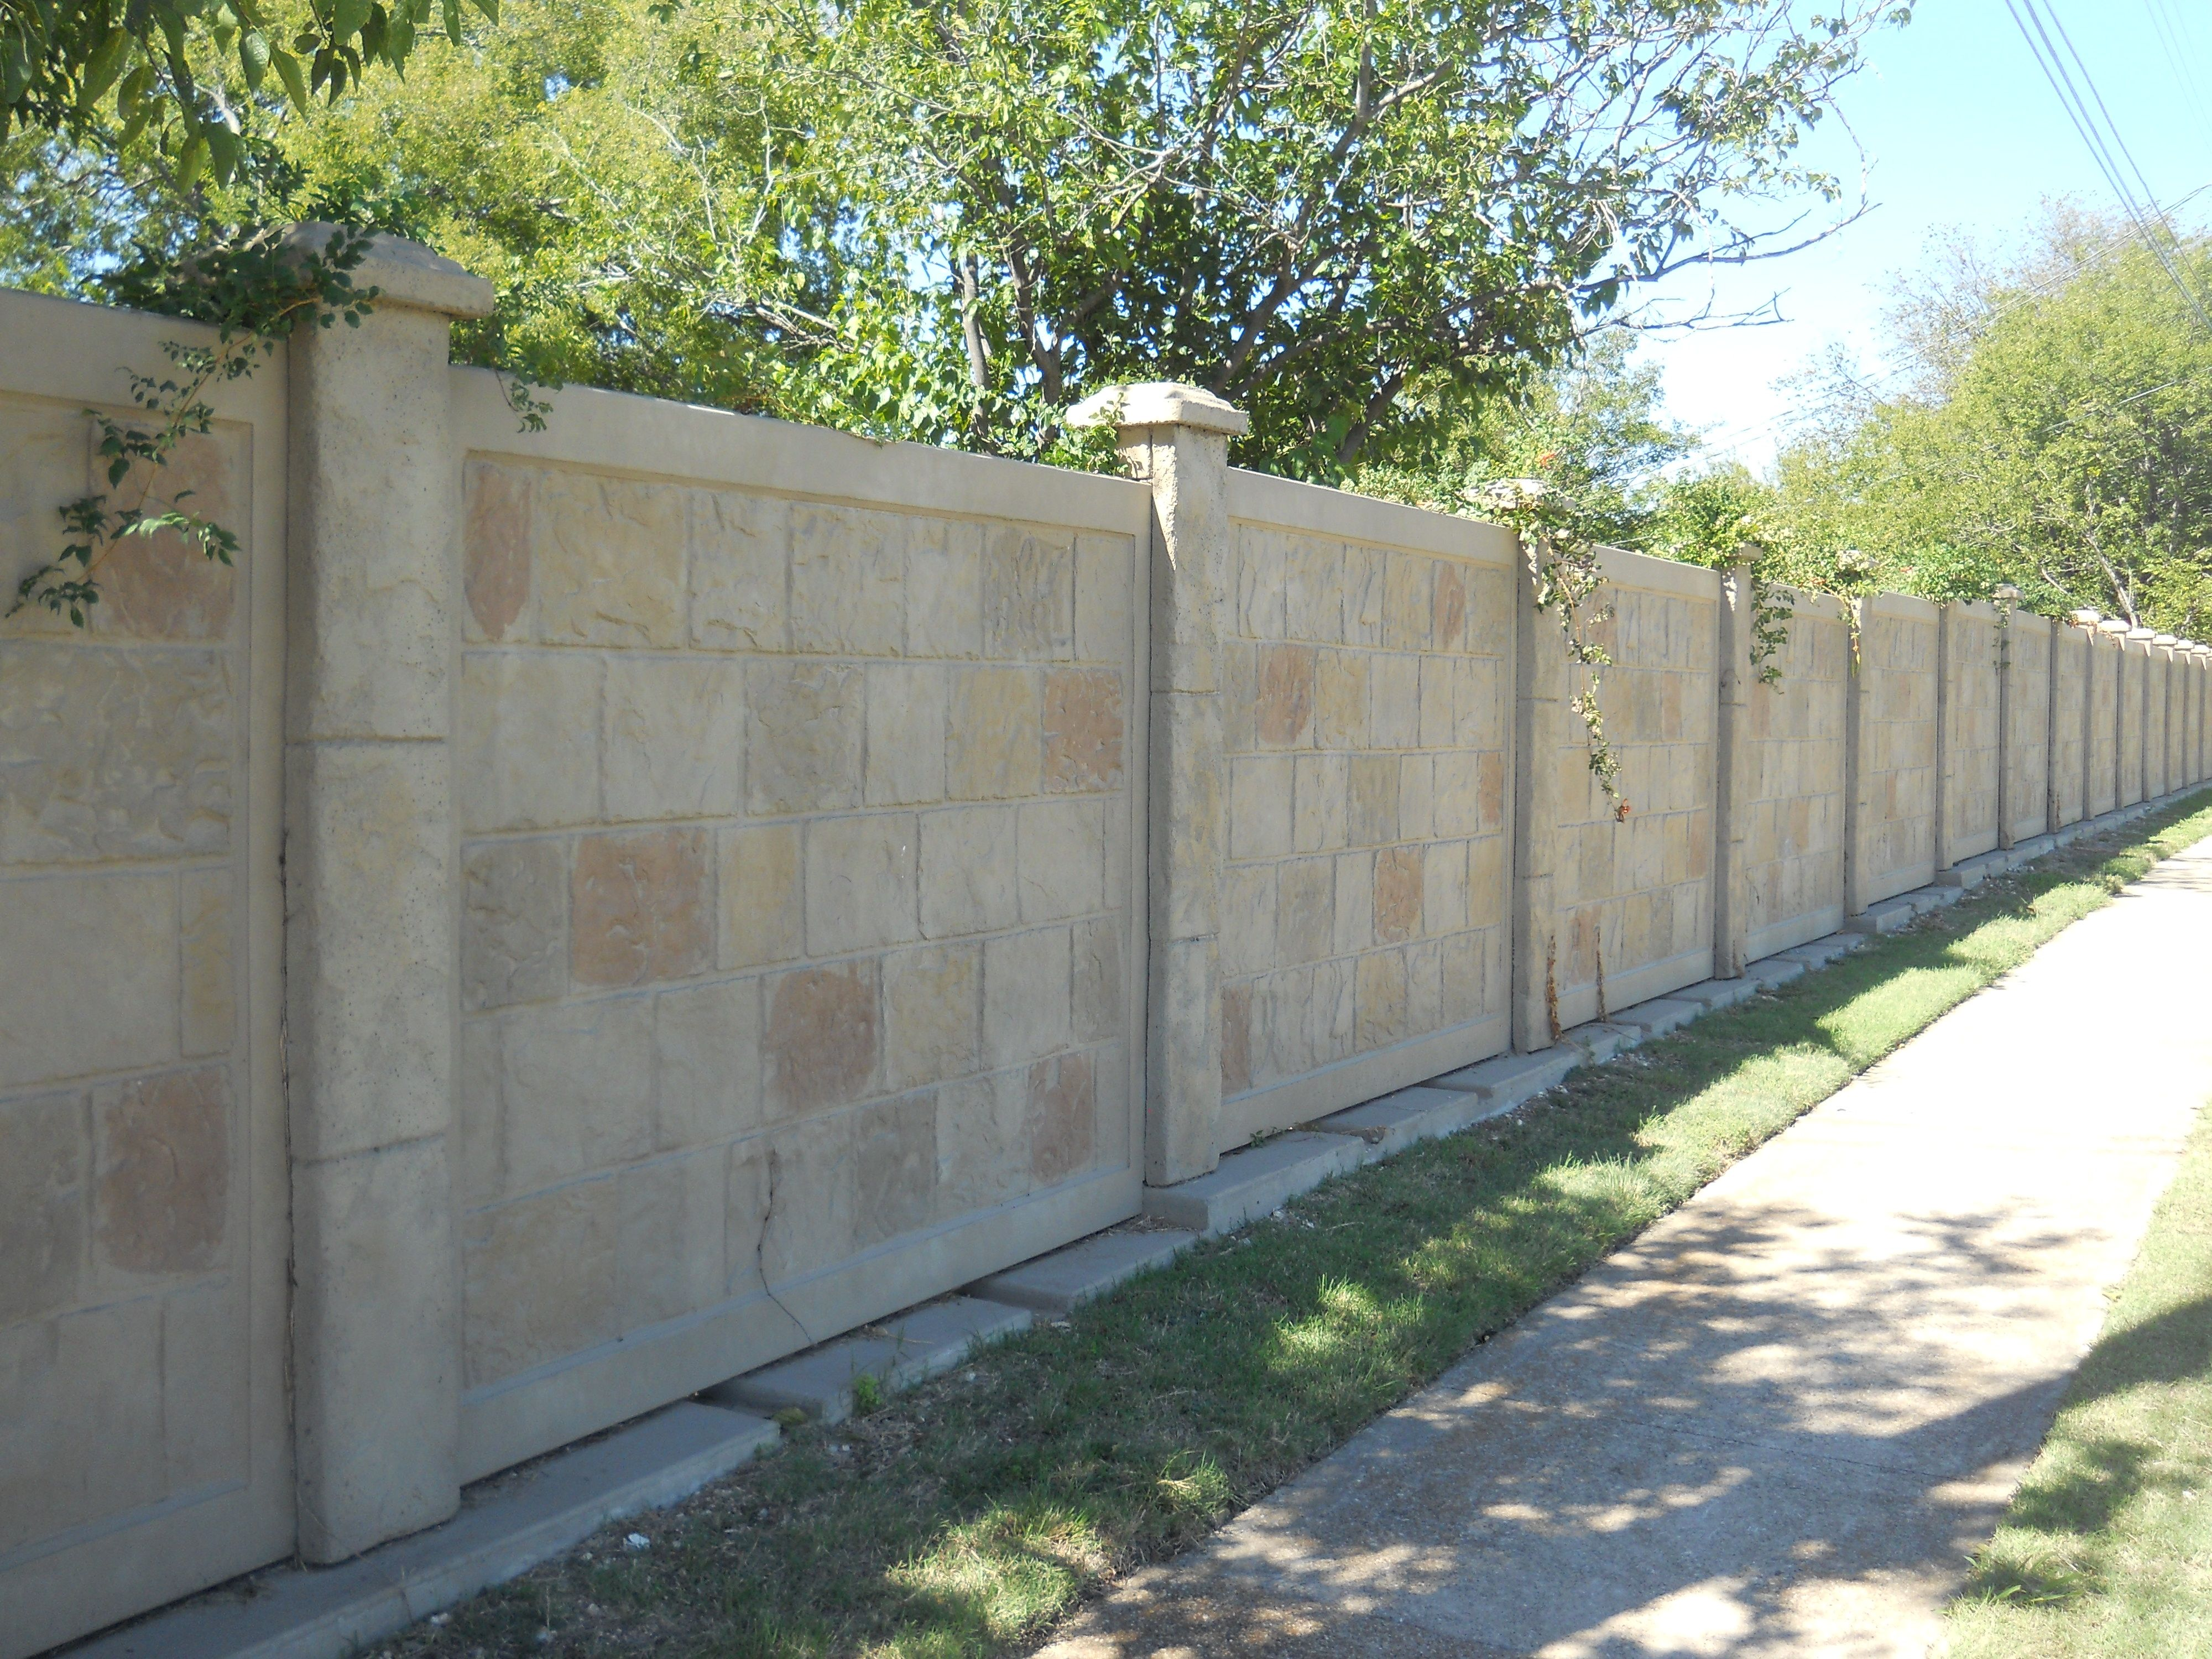 Rhinorock Hoa Or Pid Fencing At It S Best Homeowners Will Also Love The Sound Barrier Longevity And Appearance Of The Pr Outdoor Shade Structure Vinyl Fence